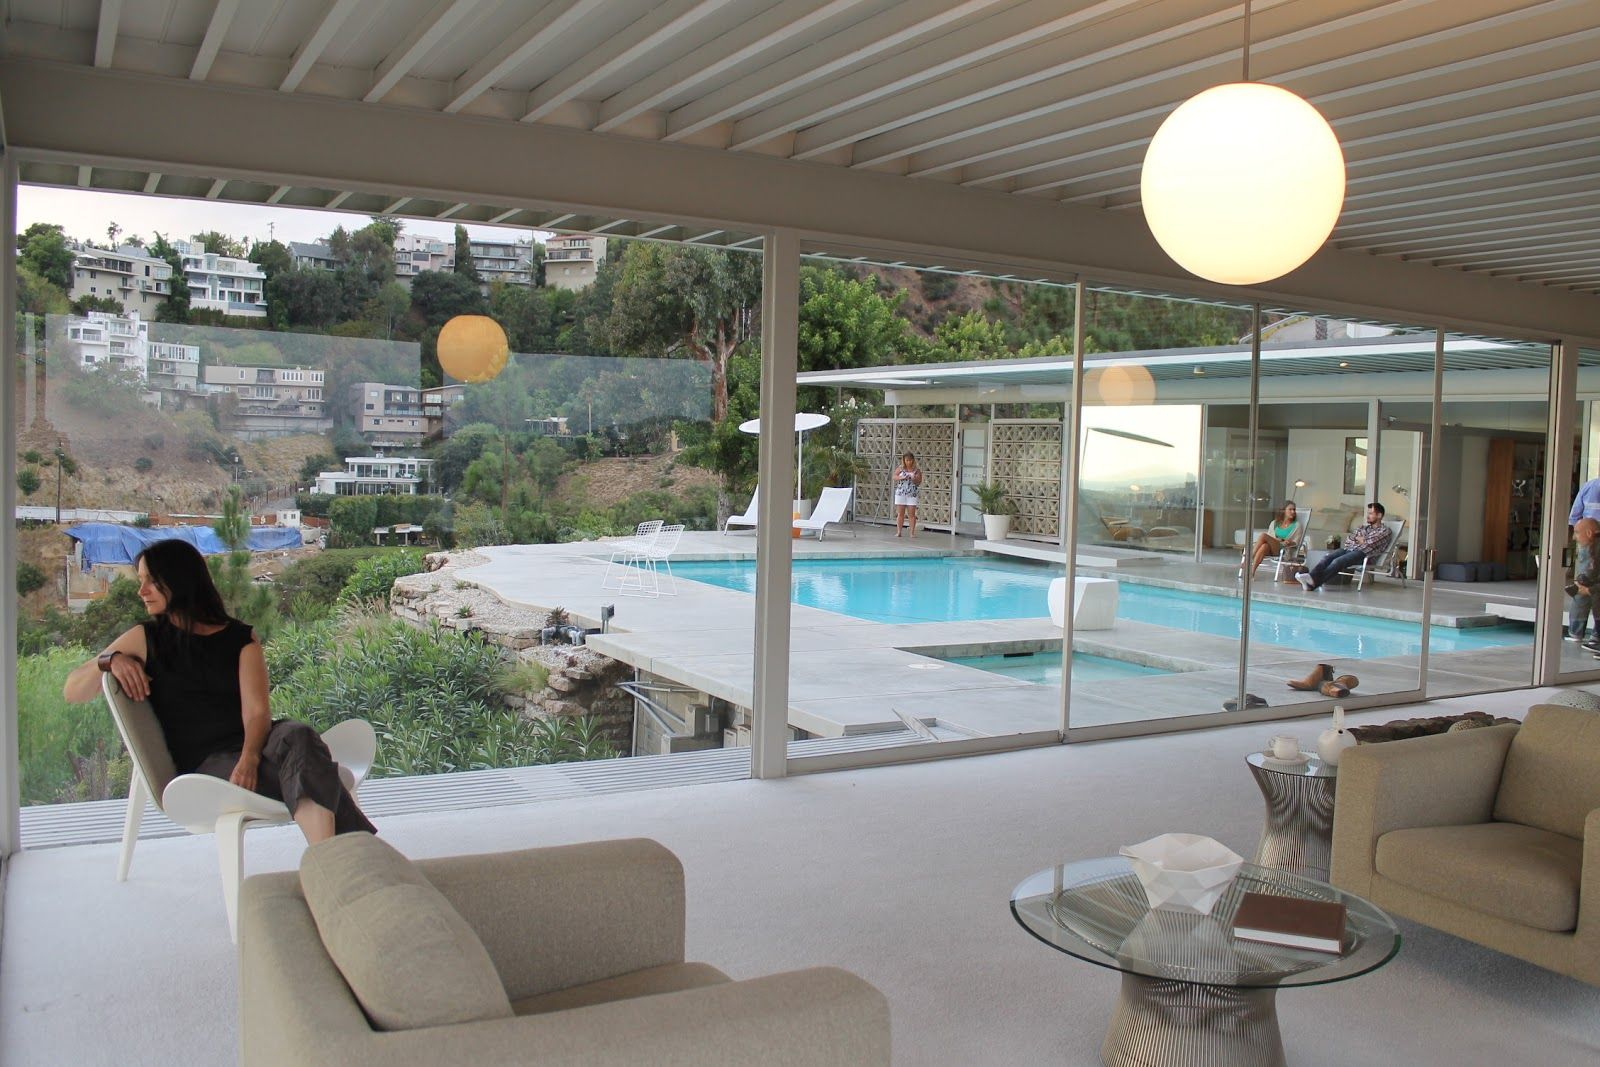 Case Study House 22 Or Stahl House By Pierre Koenig Los Angeles - Stahl-house-a-modern-residence-in-los-angeles